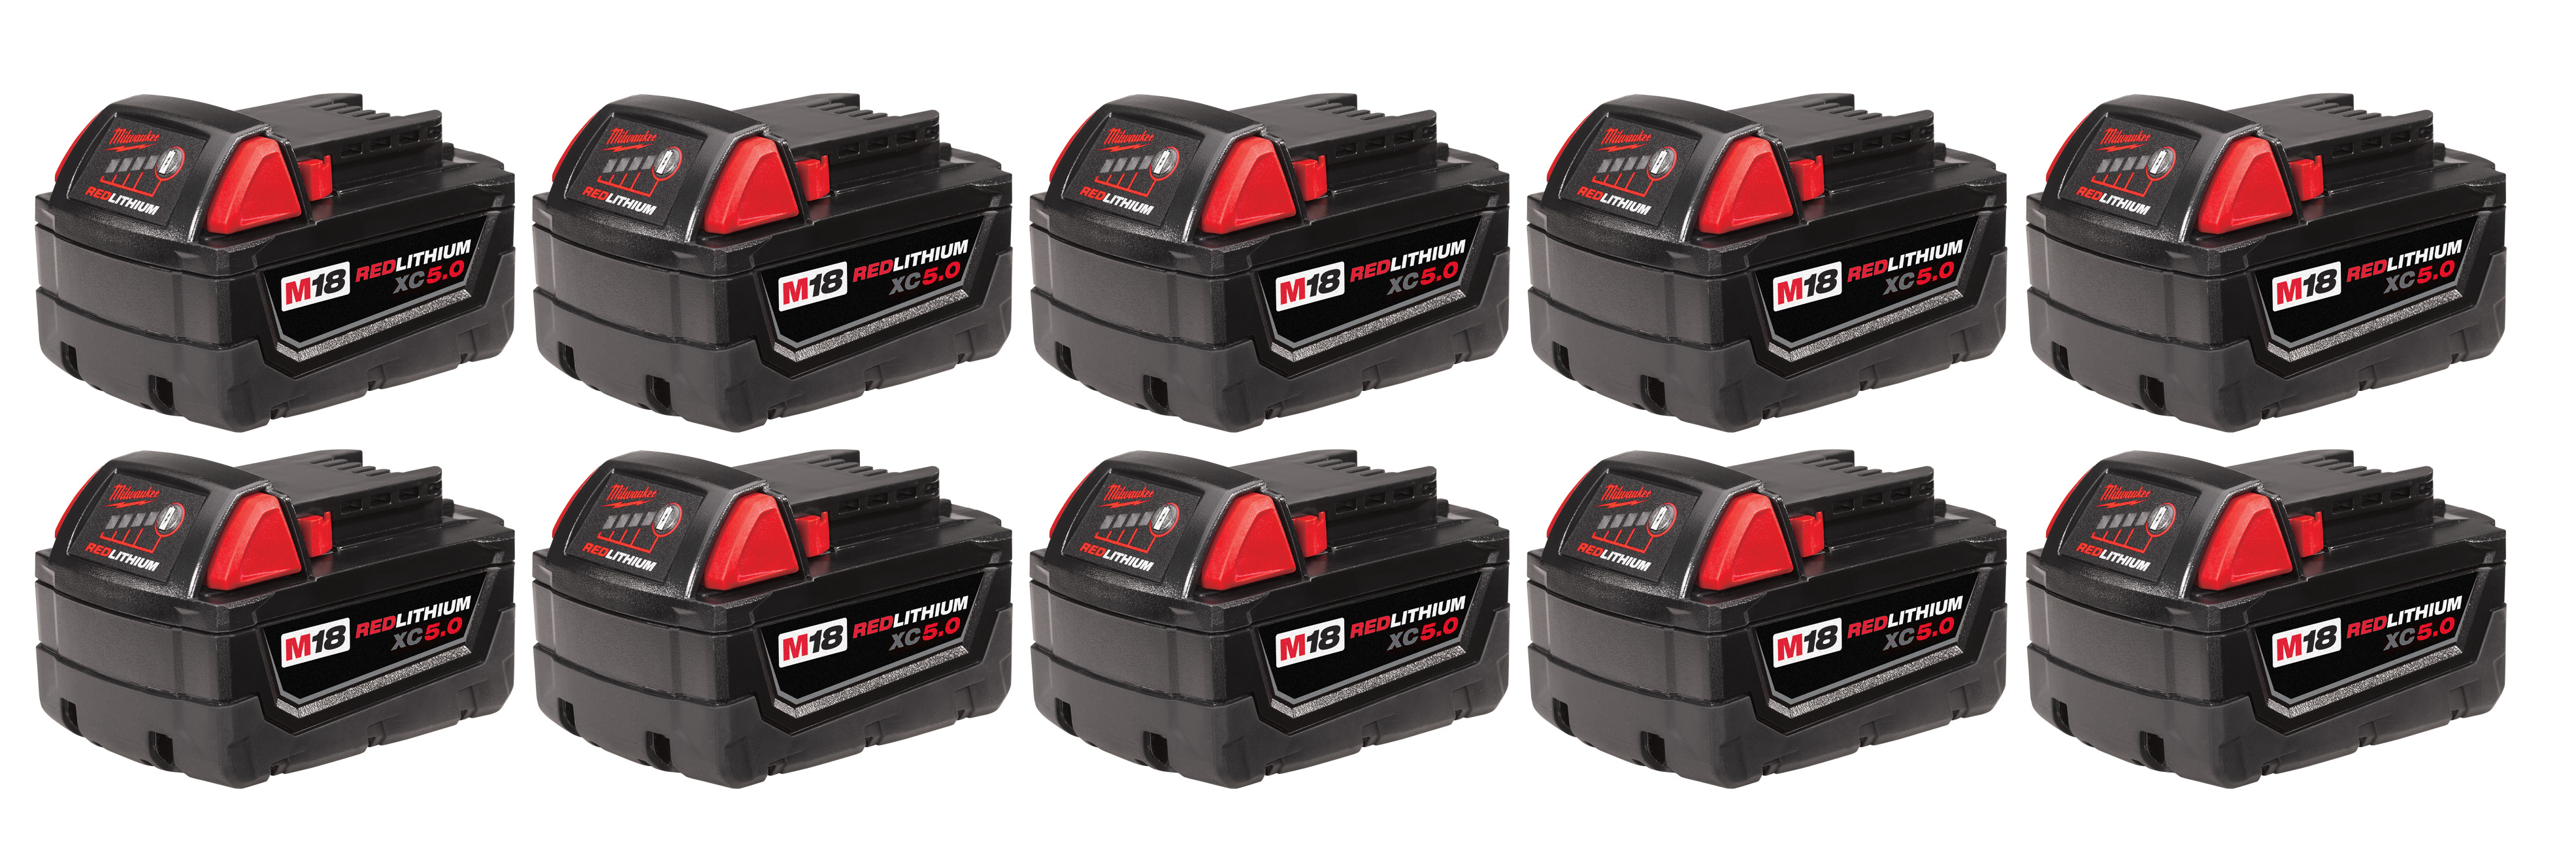 Milwaukee 48-11-1851 M18™ REDLITHIUM™ XC 5.0Ah Extended Capacity Battery Pack (10 Piece)